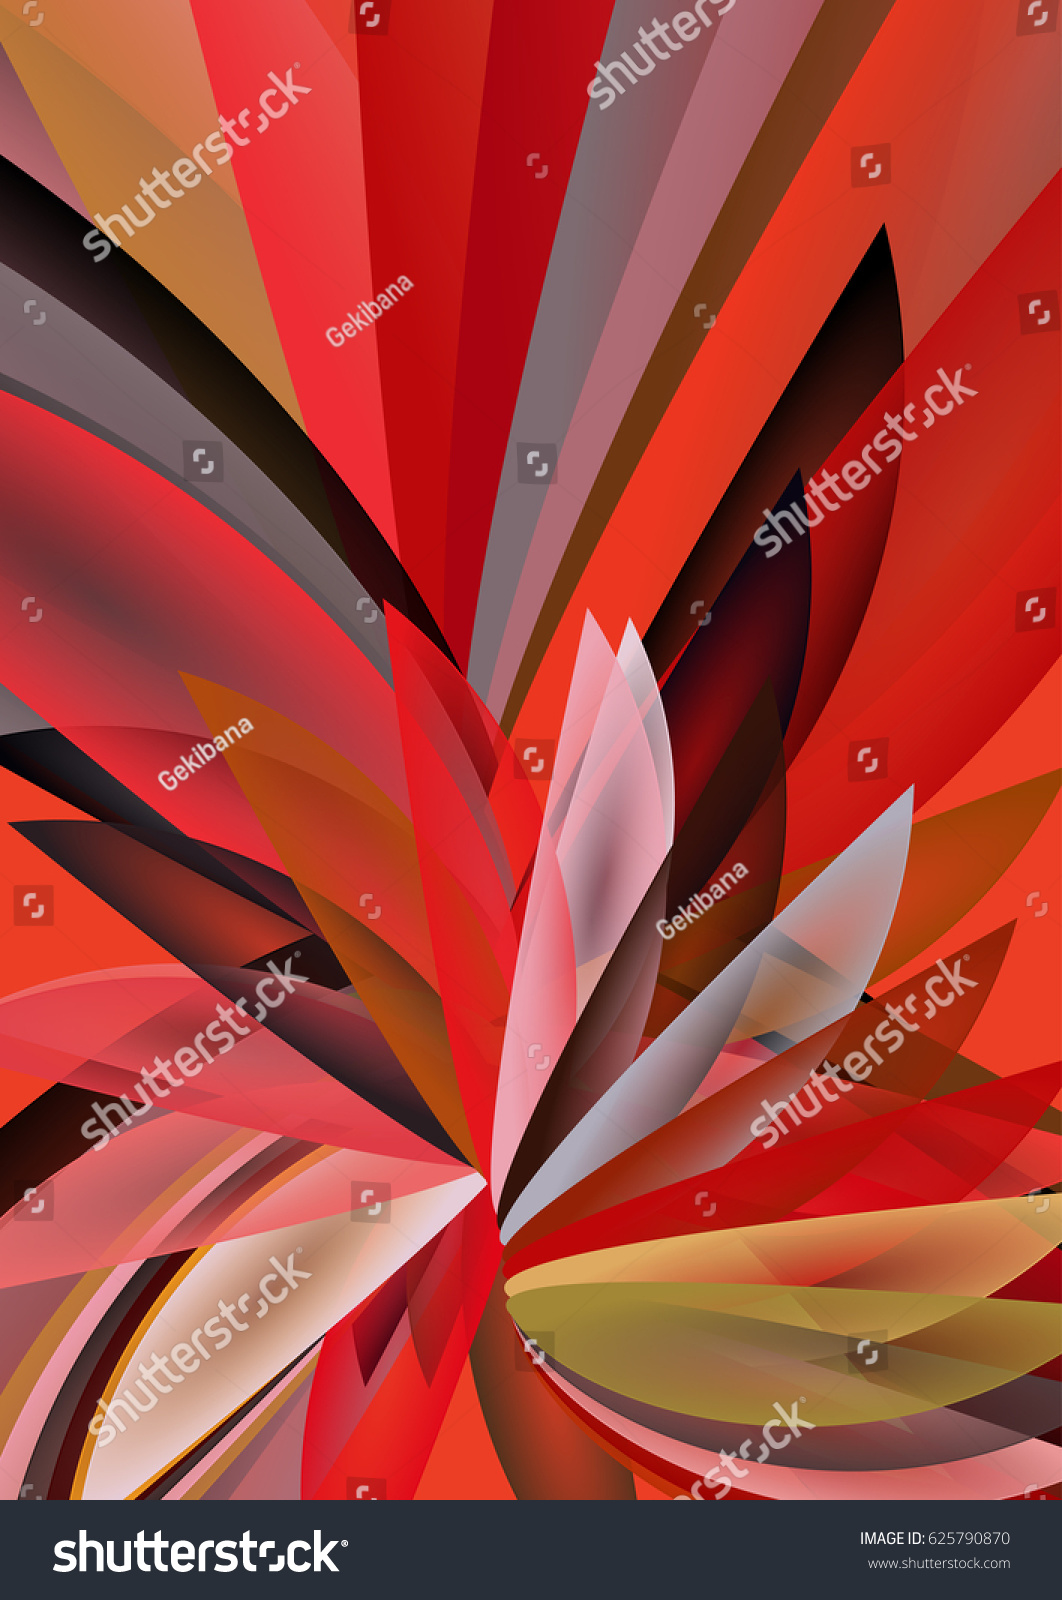 Abstract Geometrical Background Floral Motifs Passionate Stock Vector Royalty Free 625790870